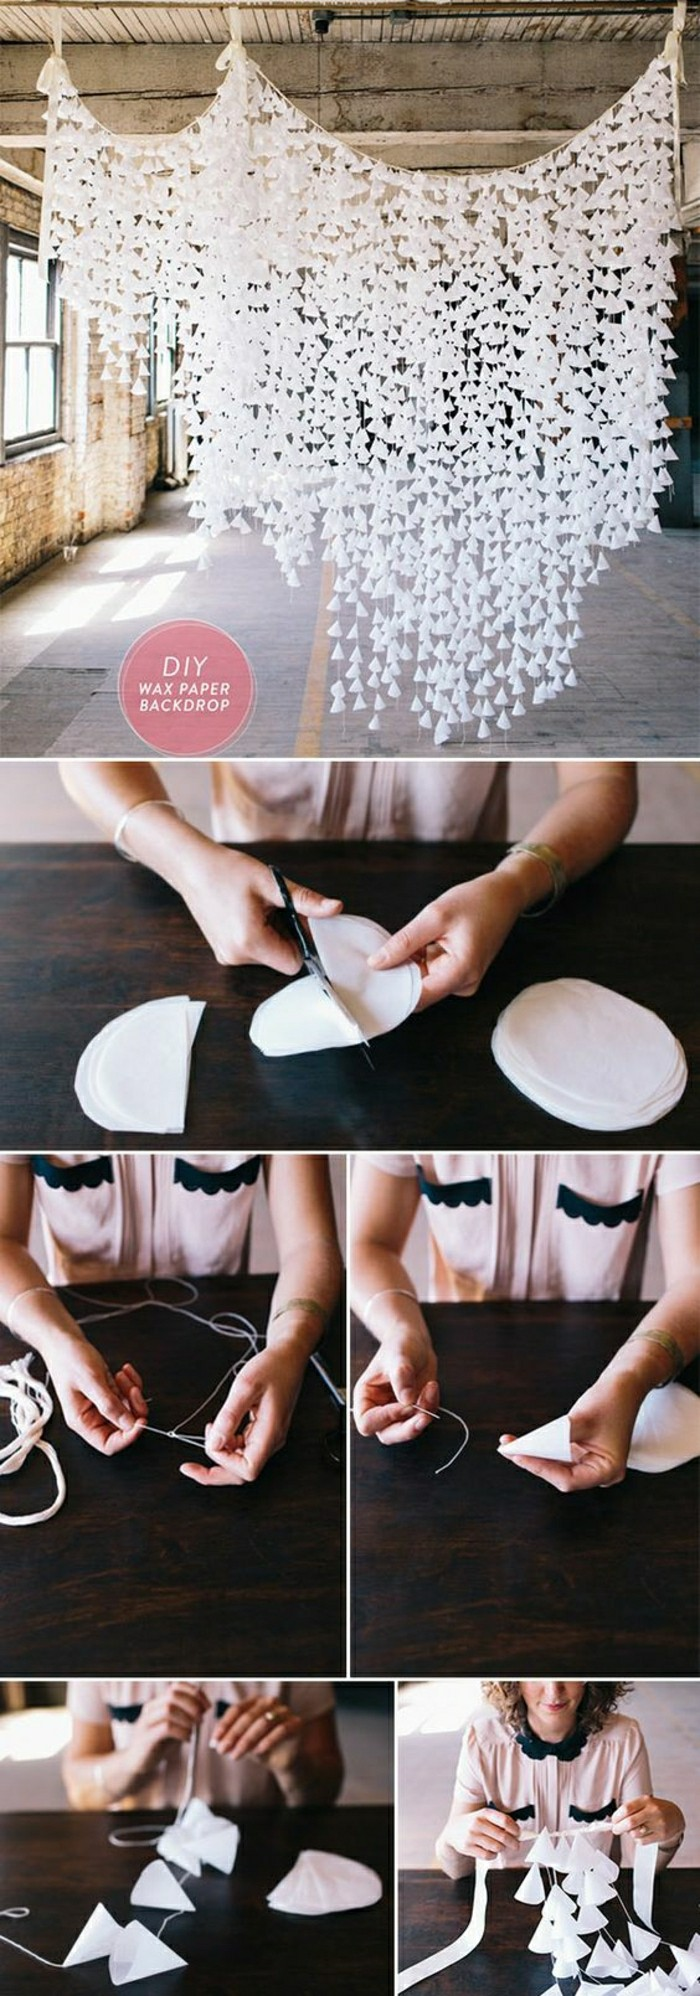 diy d co de table mariage total 30 eur. Black Bedroom Furniture Sets. Home Design Ideas